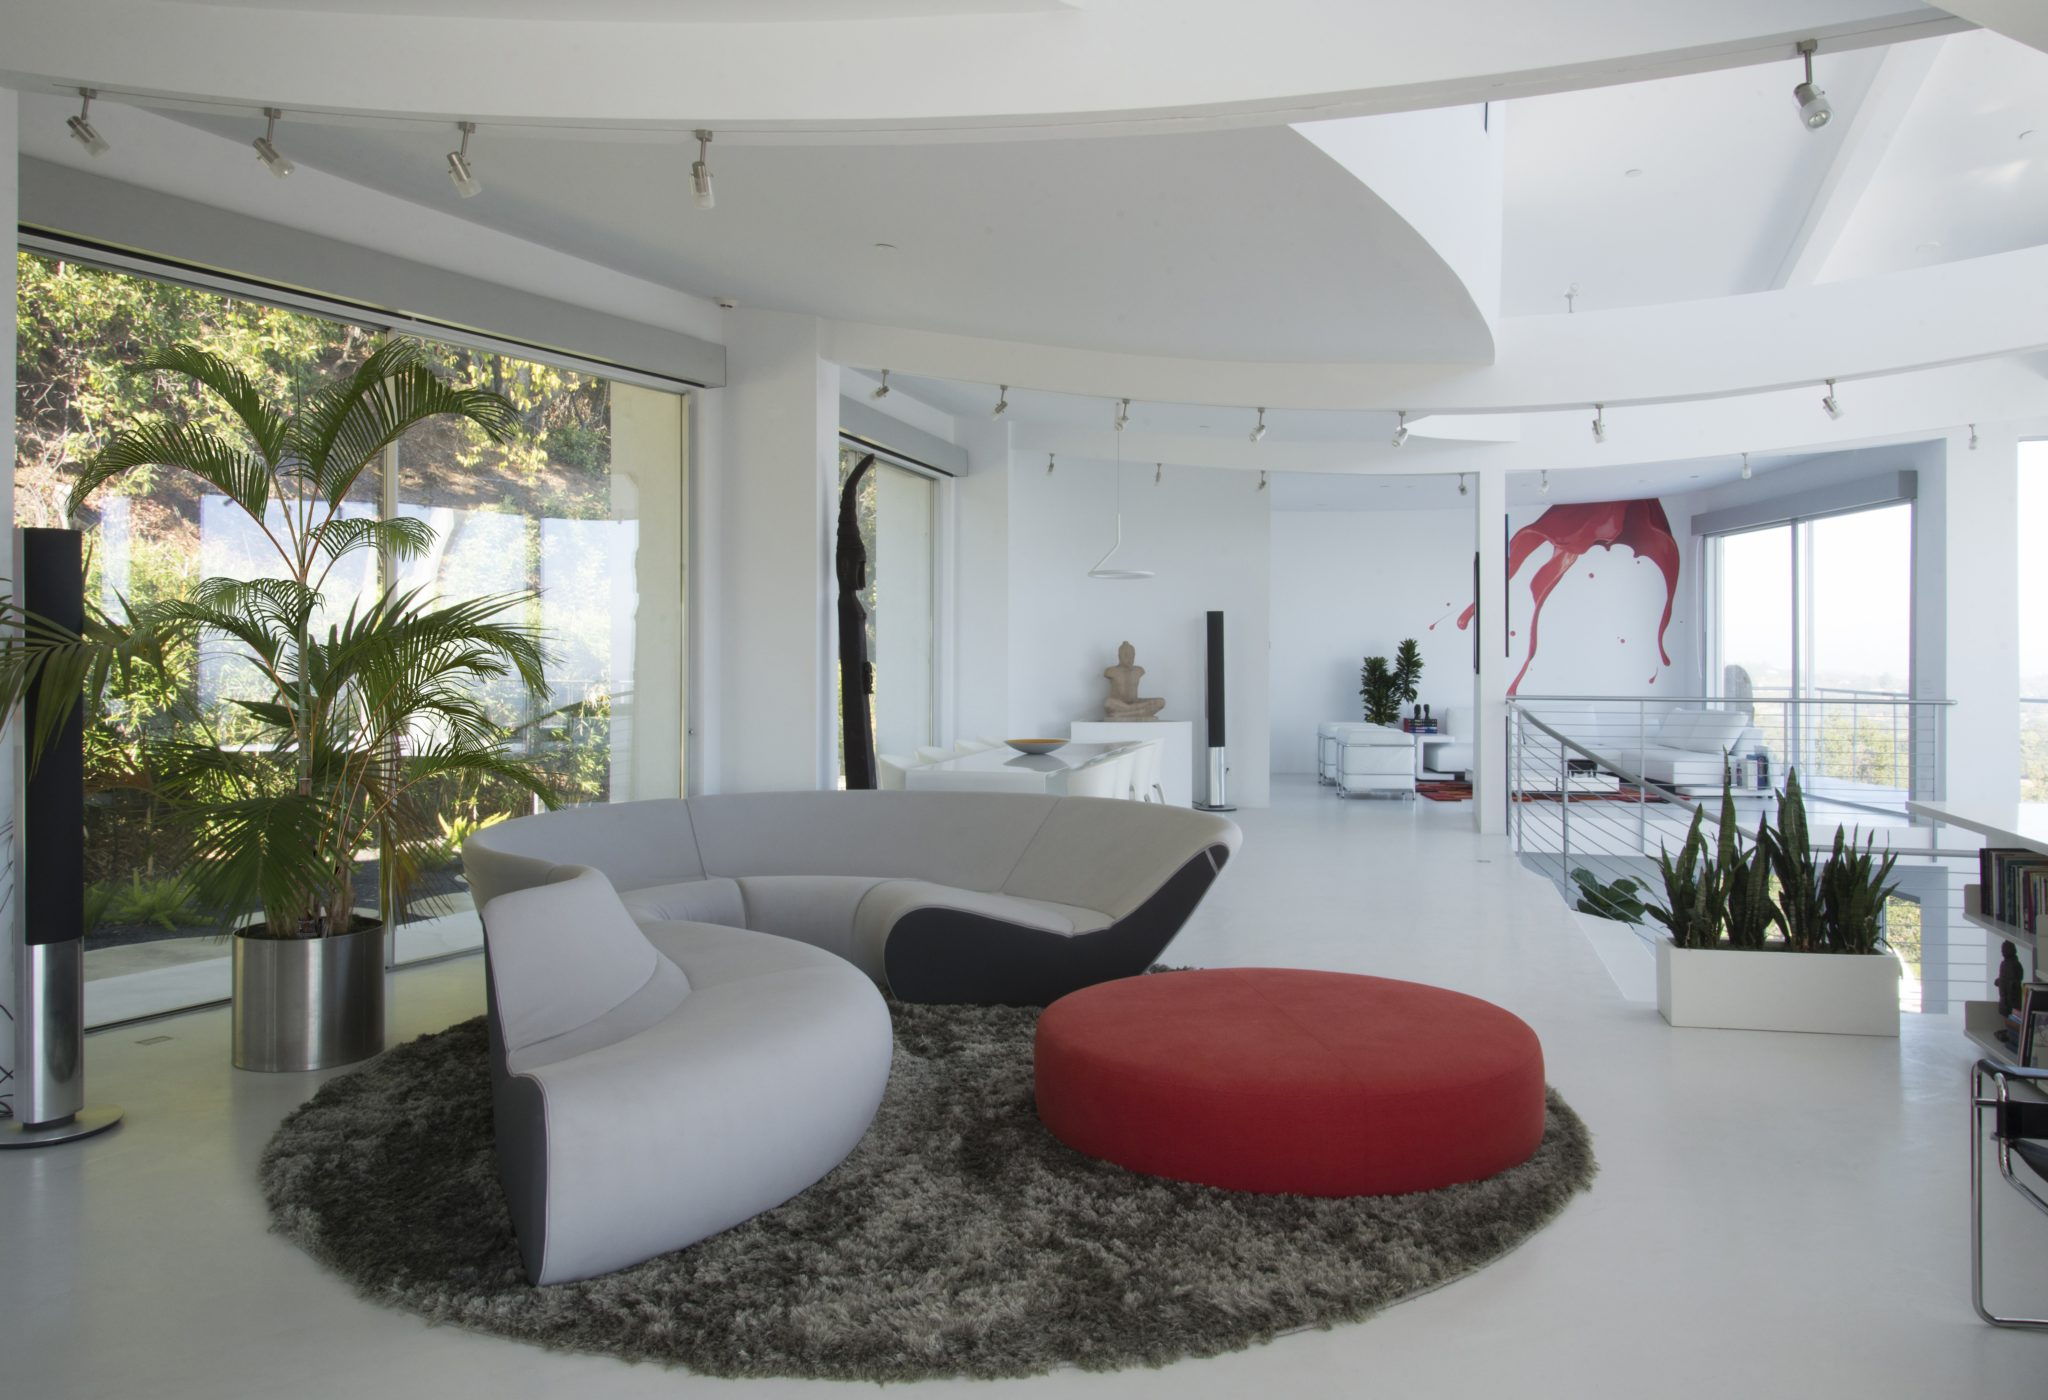 Los Altos Hills, Curved House, Family Room with double height ceiling by Isolina Mallon Interiors